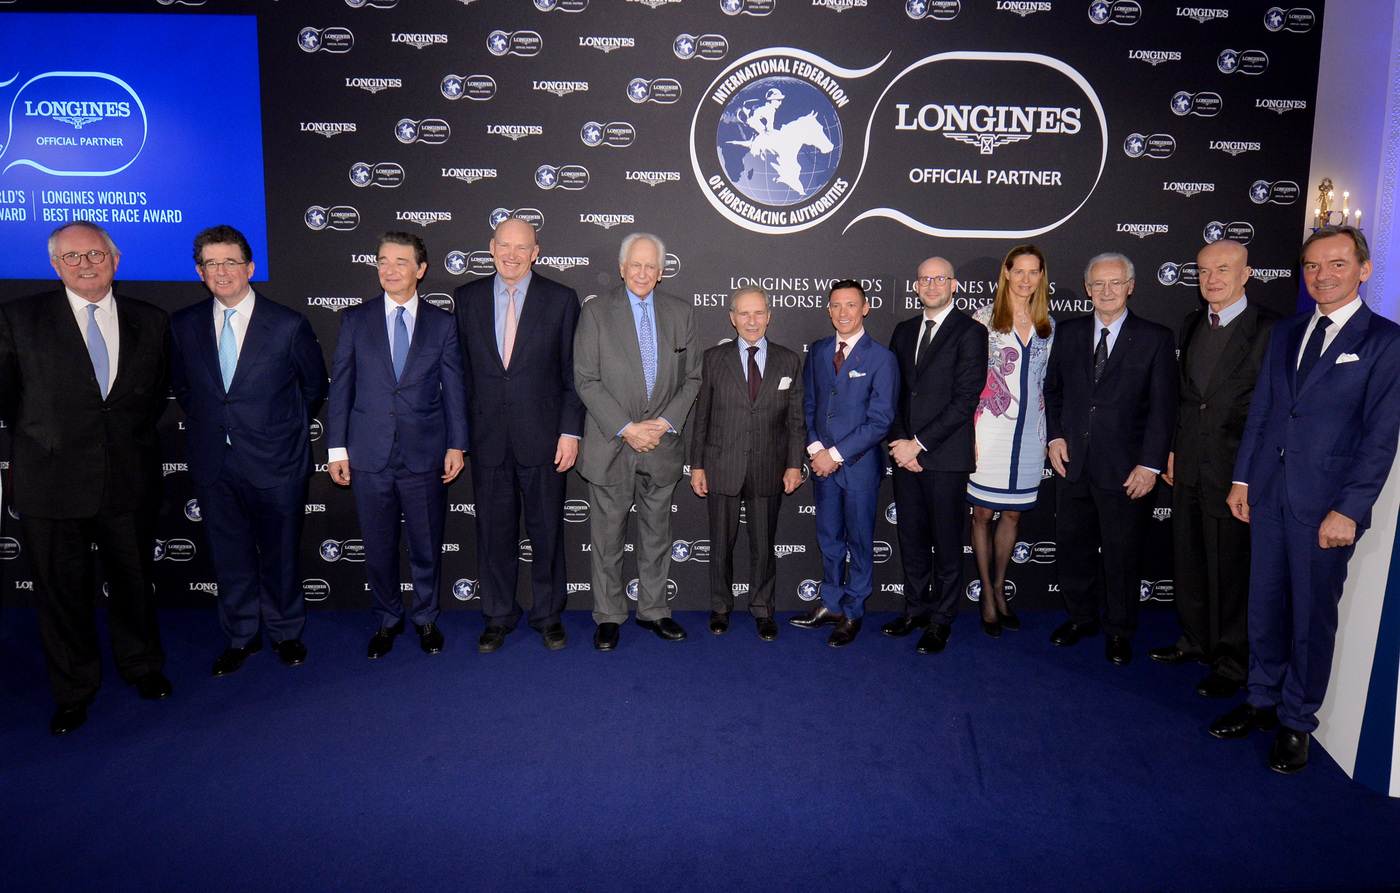 Longines Flat Racing Event: Crystal Ocean, Enable and Waldgeist crowned the 2019 Longines World's Best Racehorses, Qatar Prix de l'Arc de Triomphe named Longines World's Best Horse Race for the fourth time 6